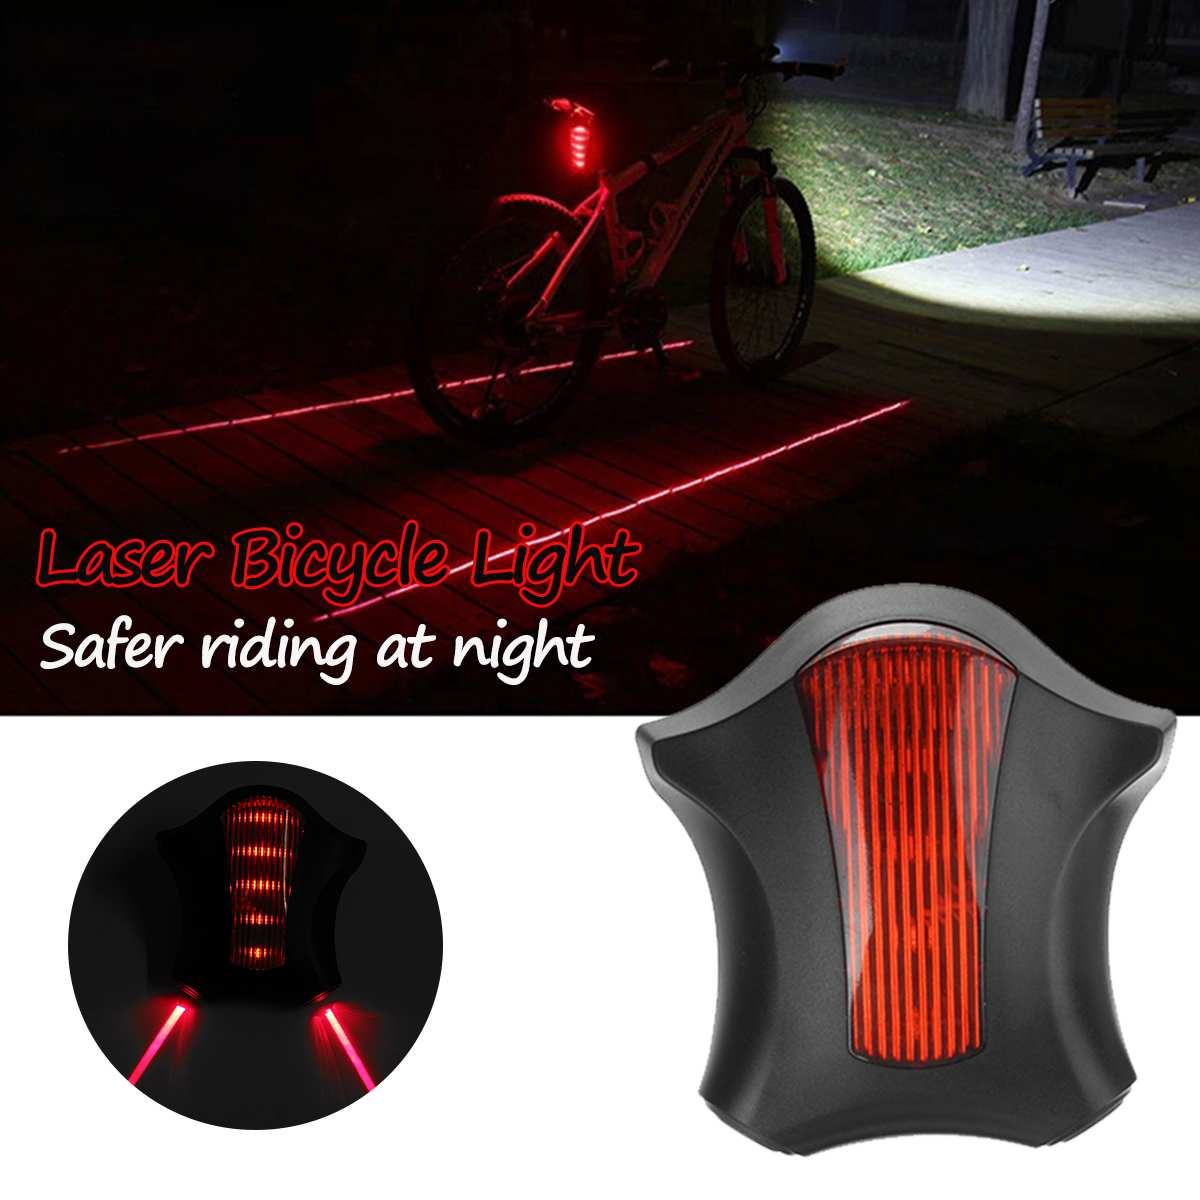 Laser Bicycle Lights Three-stage Control Waterproof Safe Night Riding Laser LED Flashlight Bike Accessories Cycling Taillight